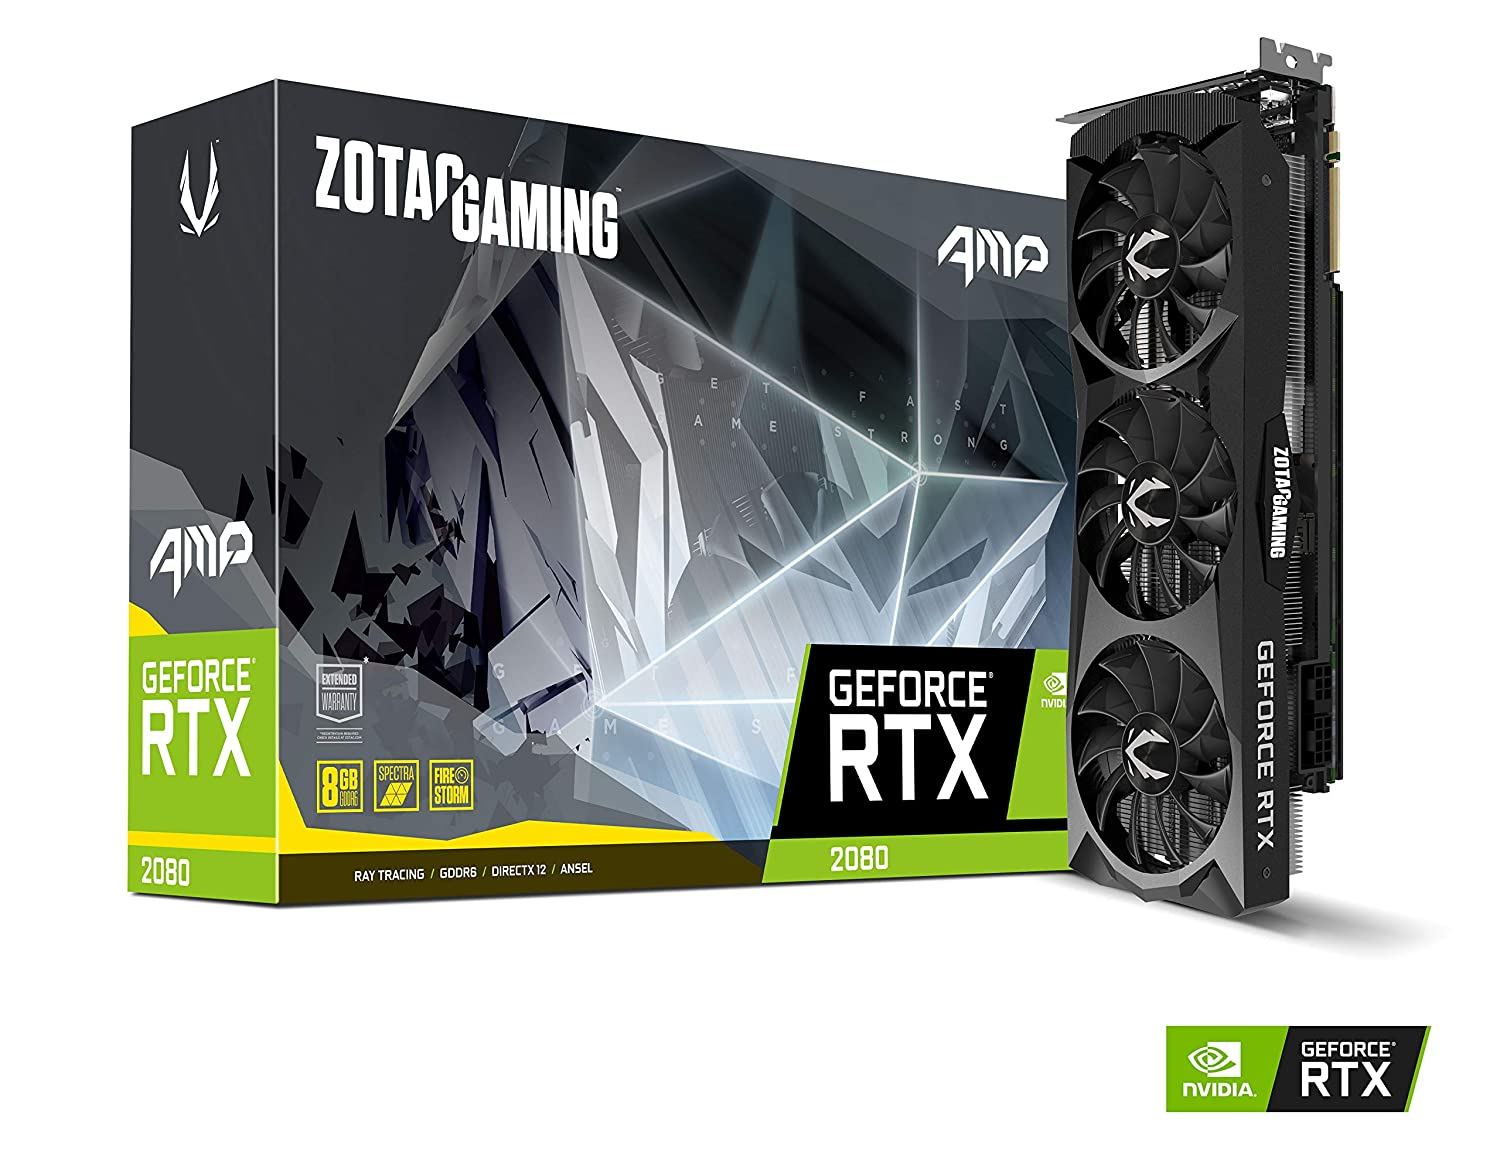 Zotac GeForce RTX 2080 AMP